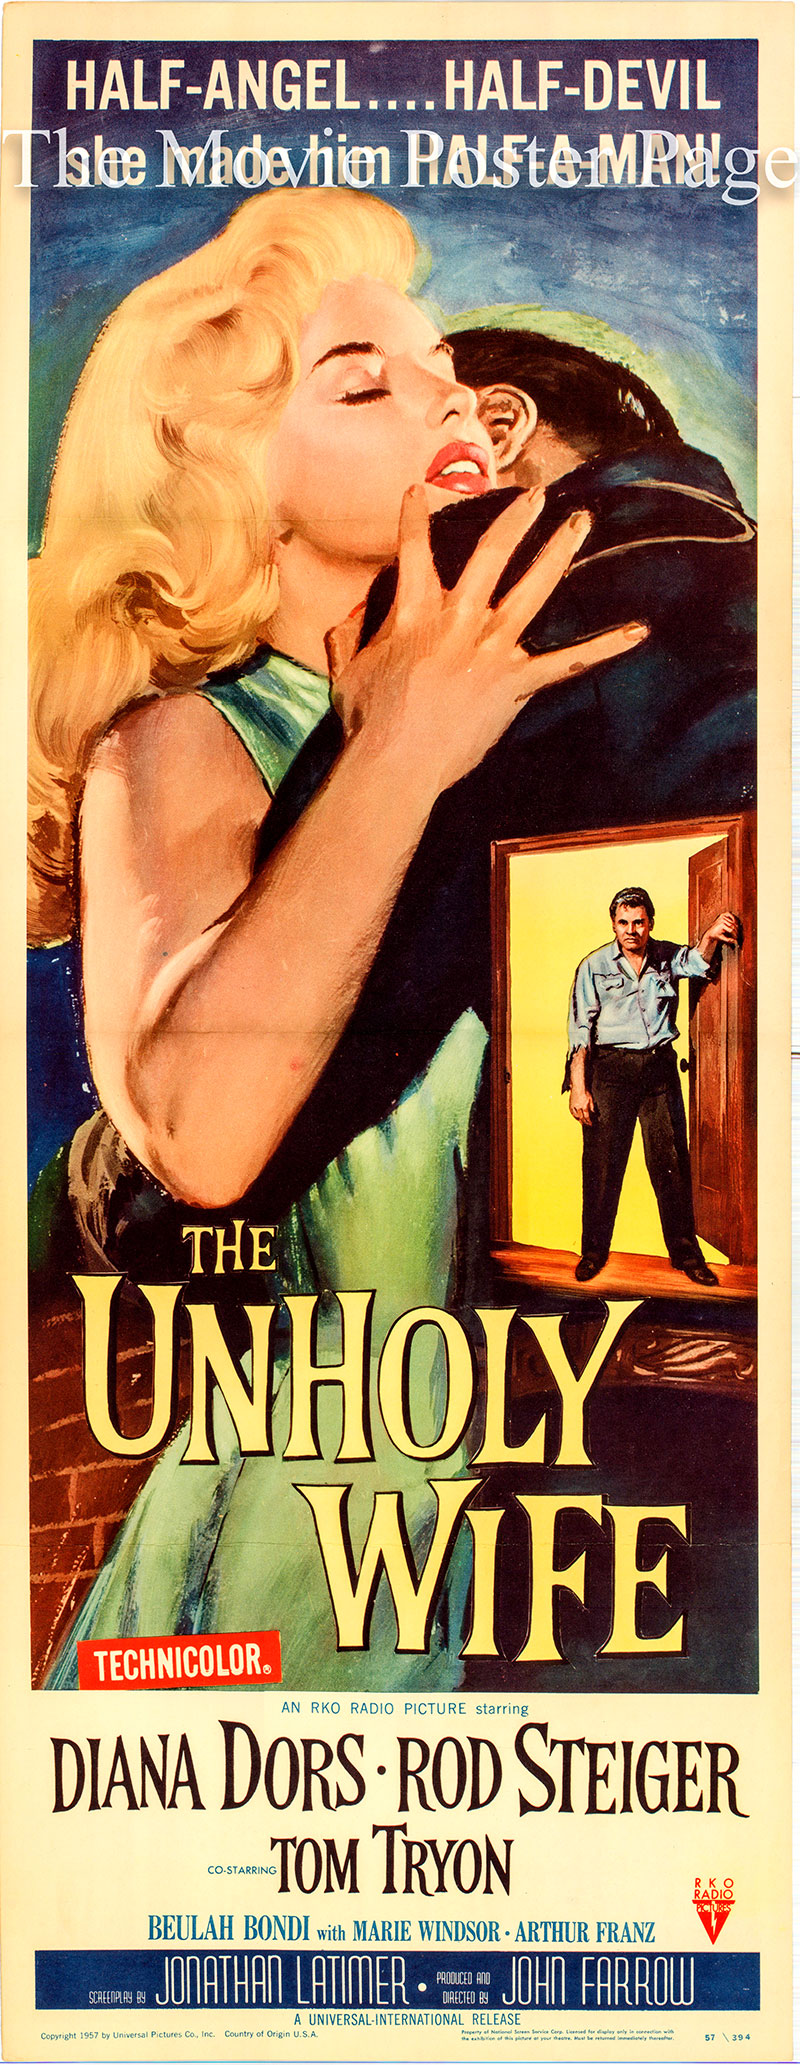 Pictured is a US insert promotional poster for the 1957 John Farrow film The Unholy Wife starring Diana Dors and Rod Steiger.